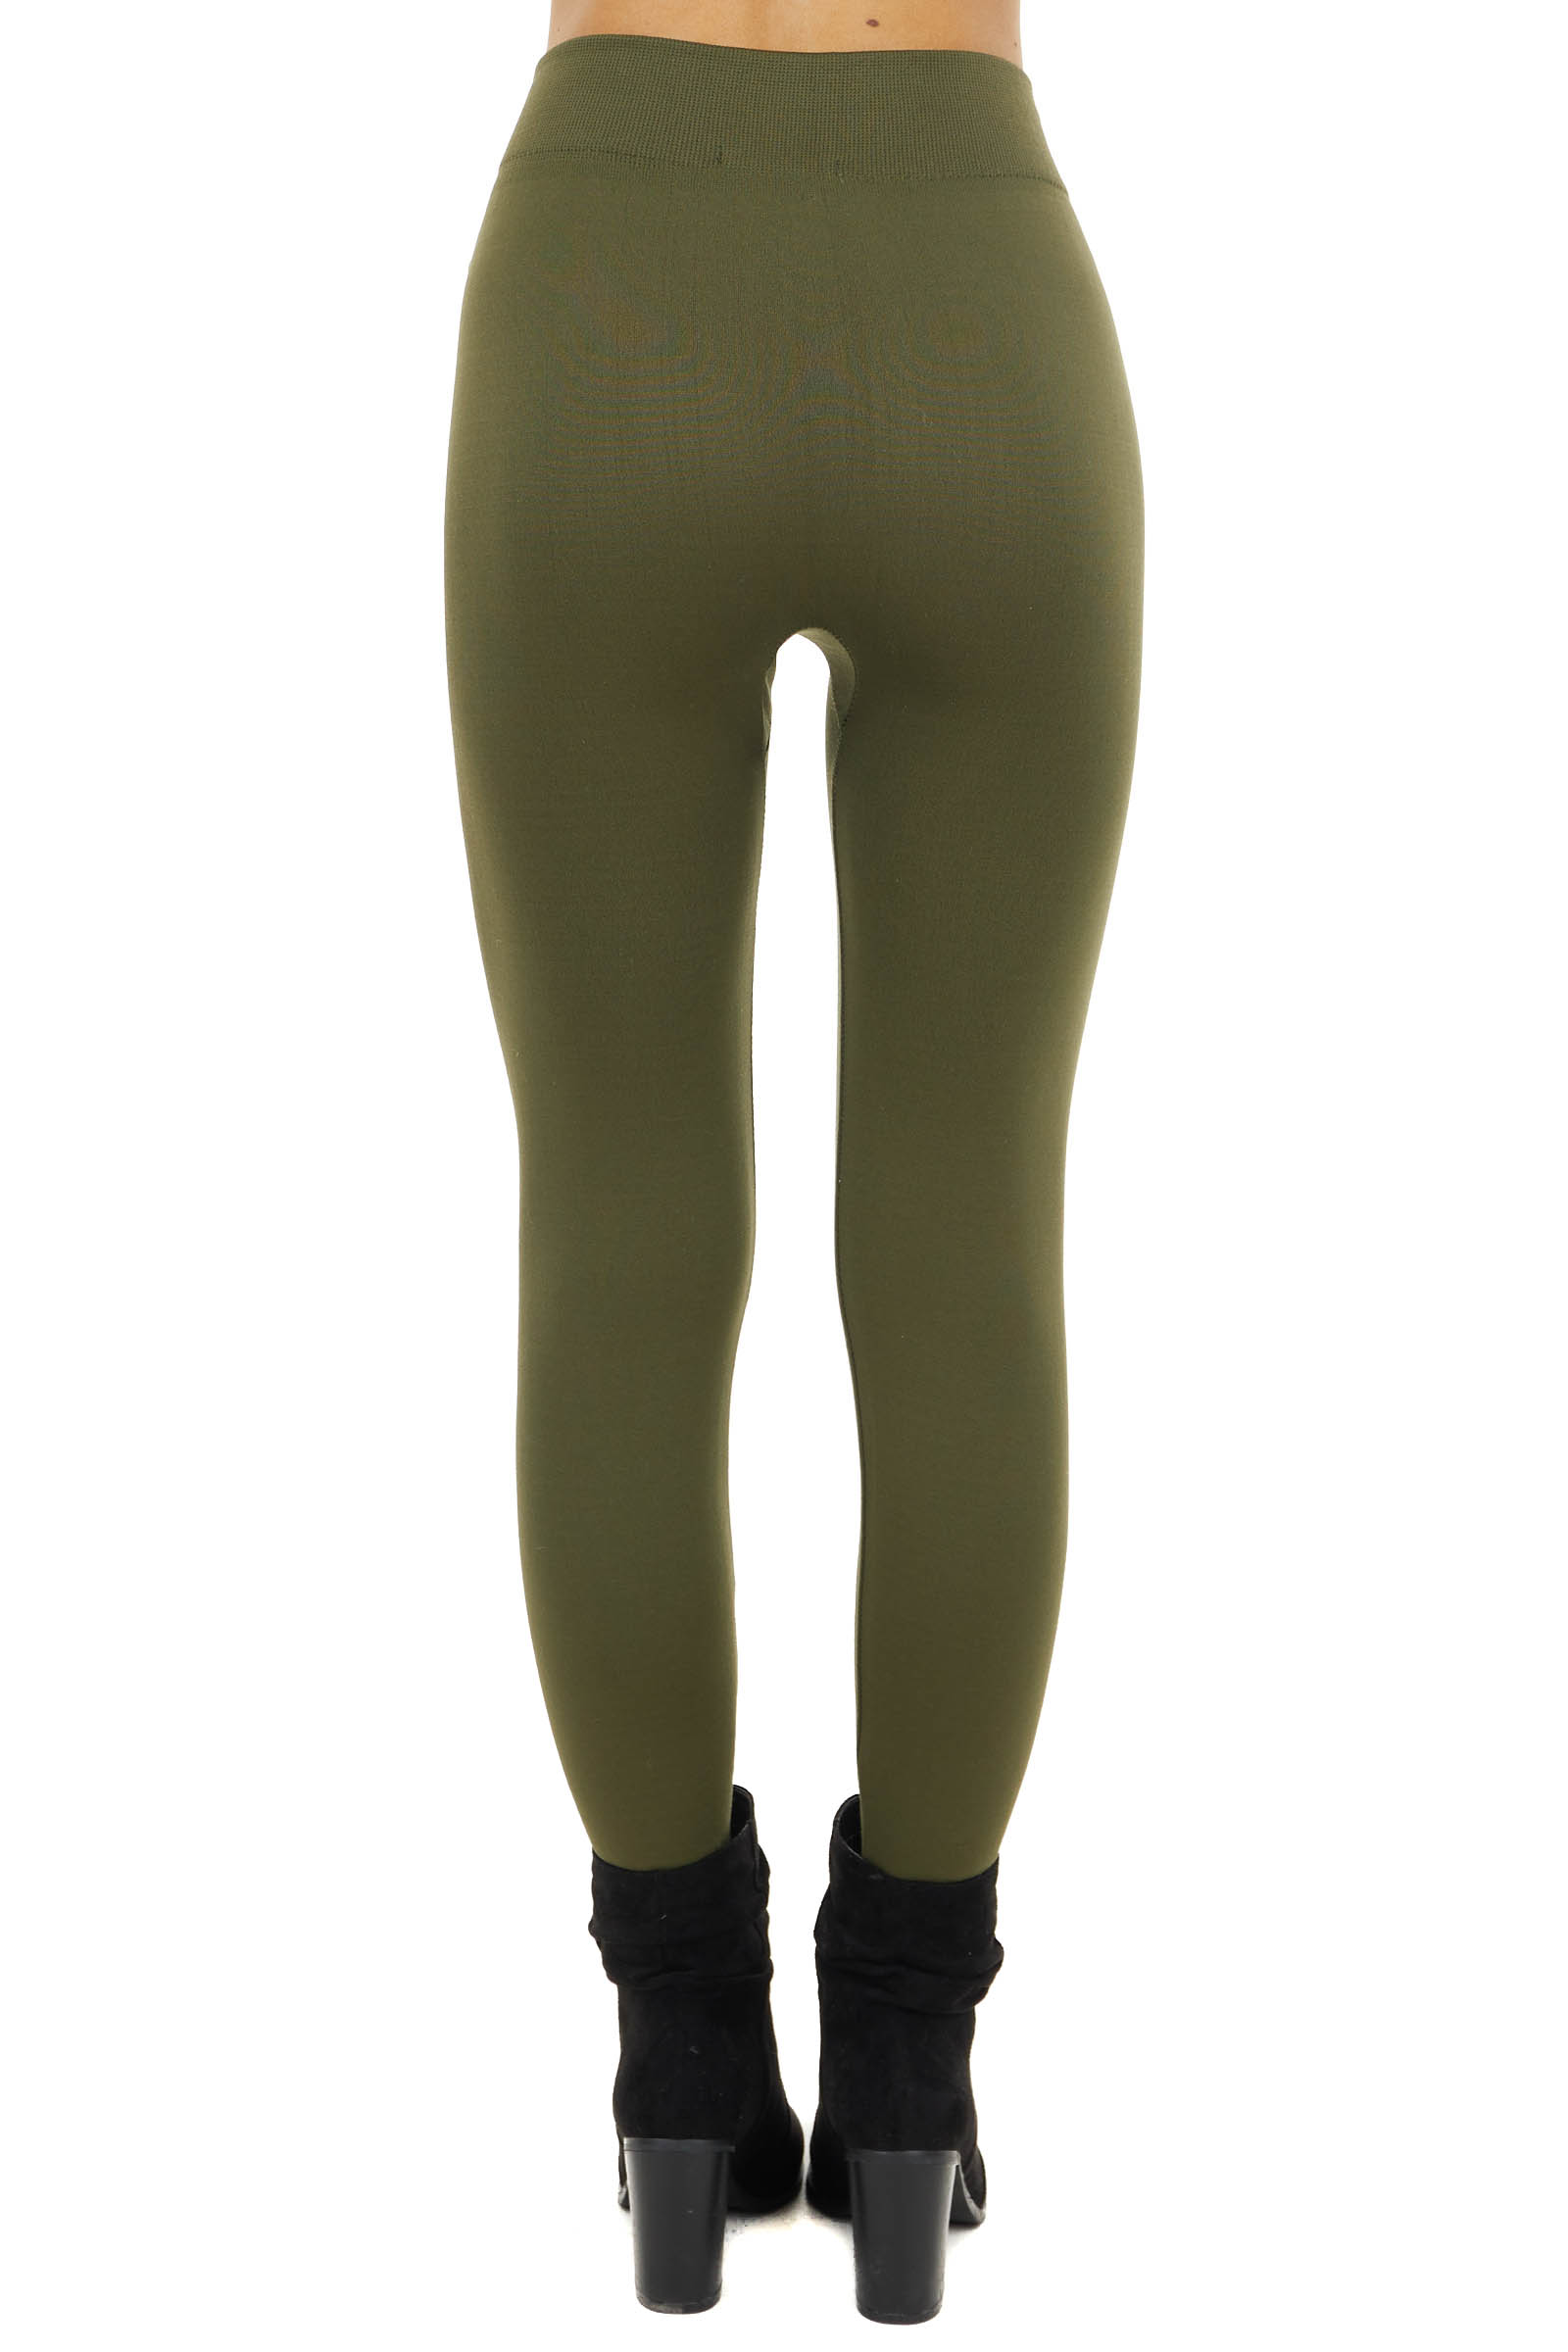 Olive Fleece Lined Knit Leggings with Elastic Waist